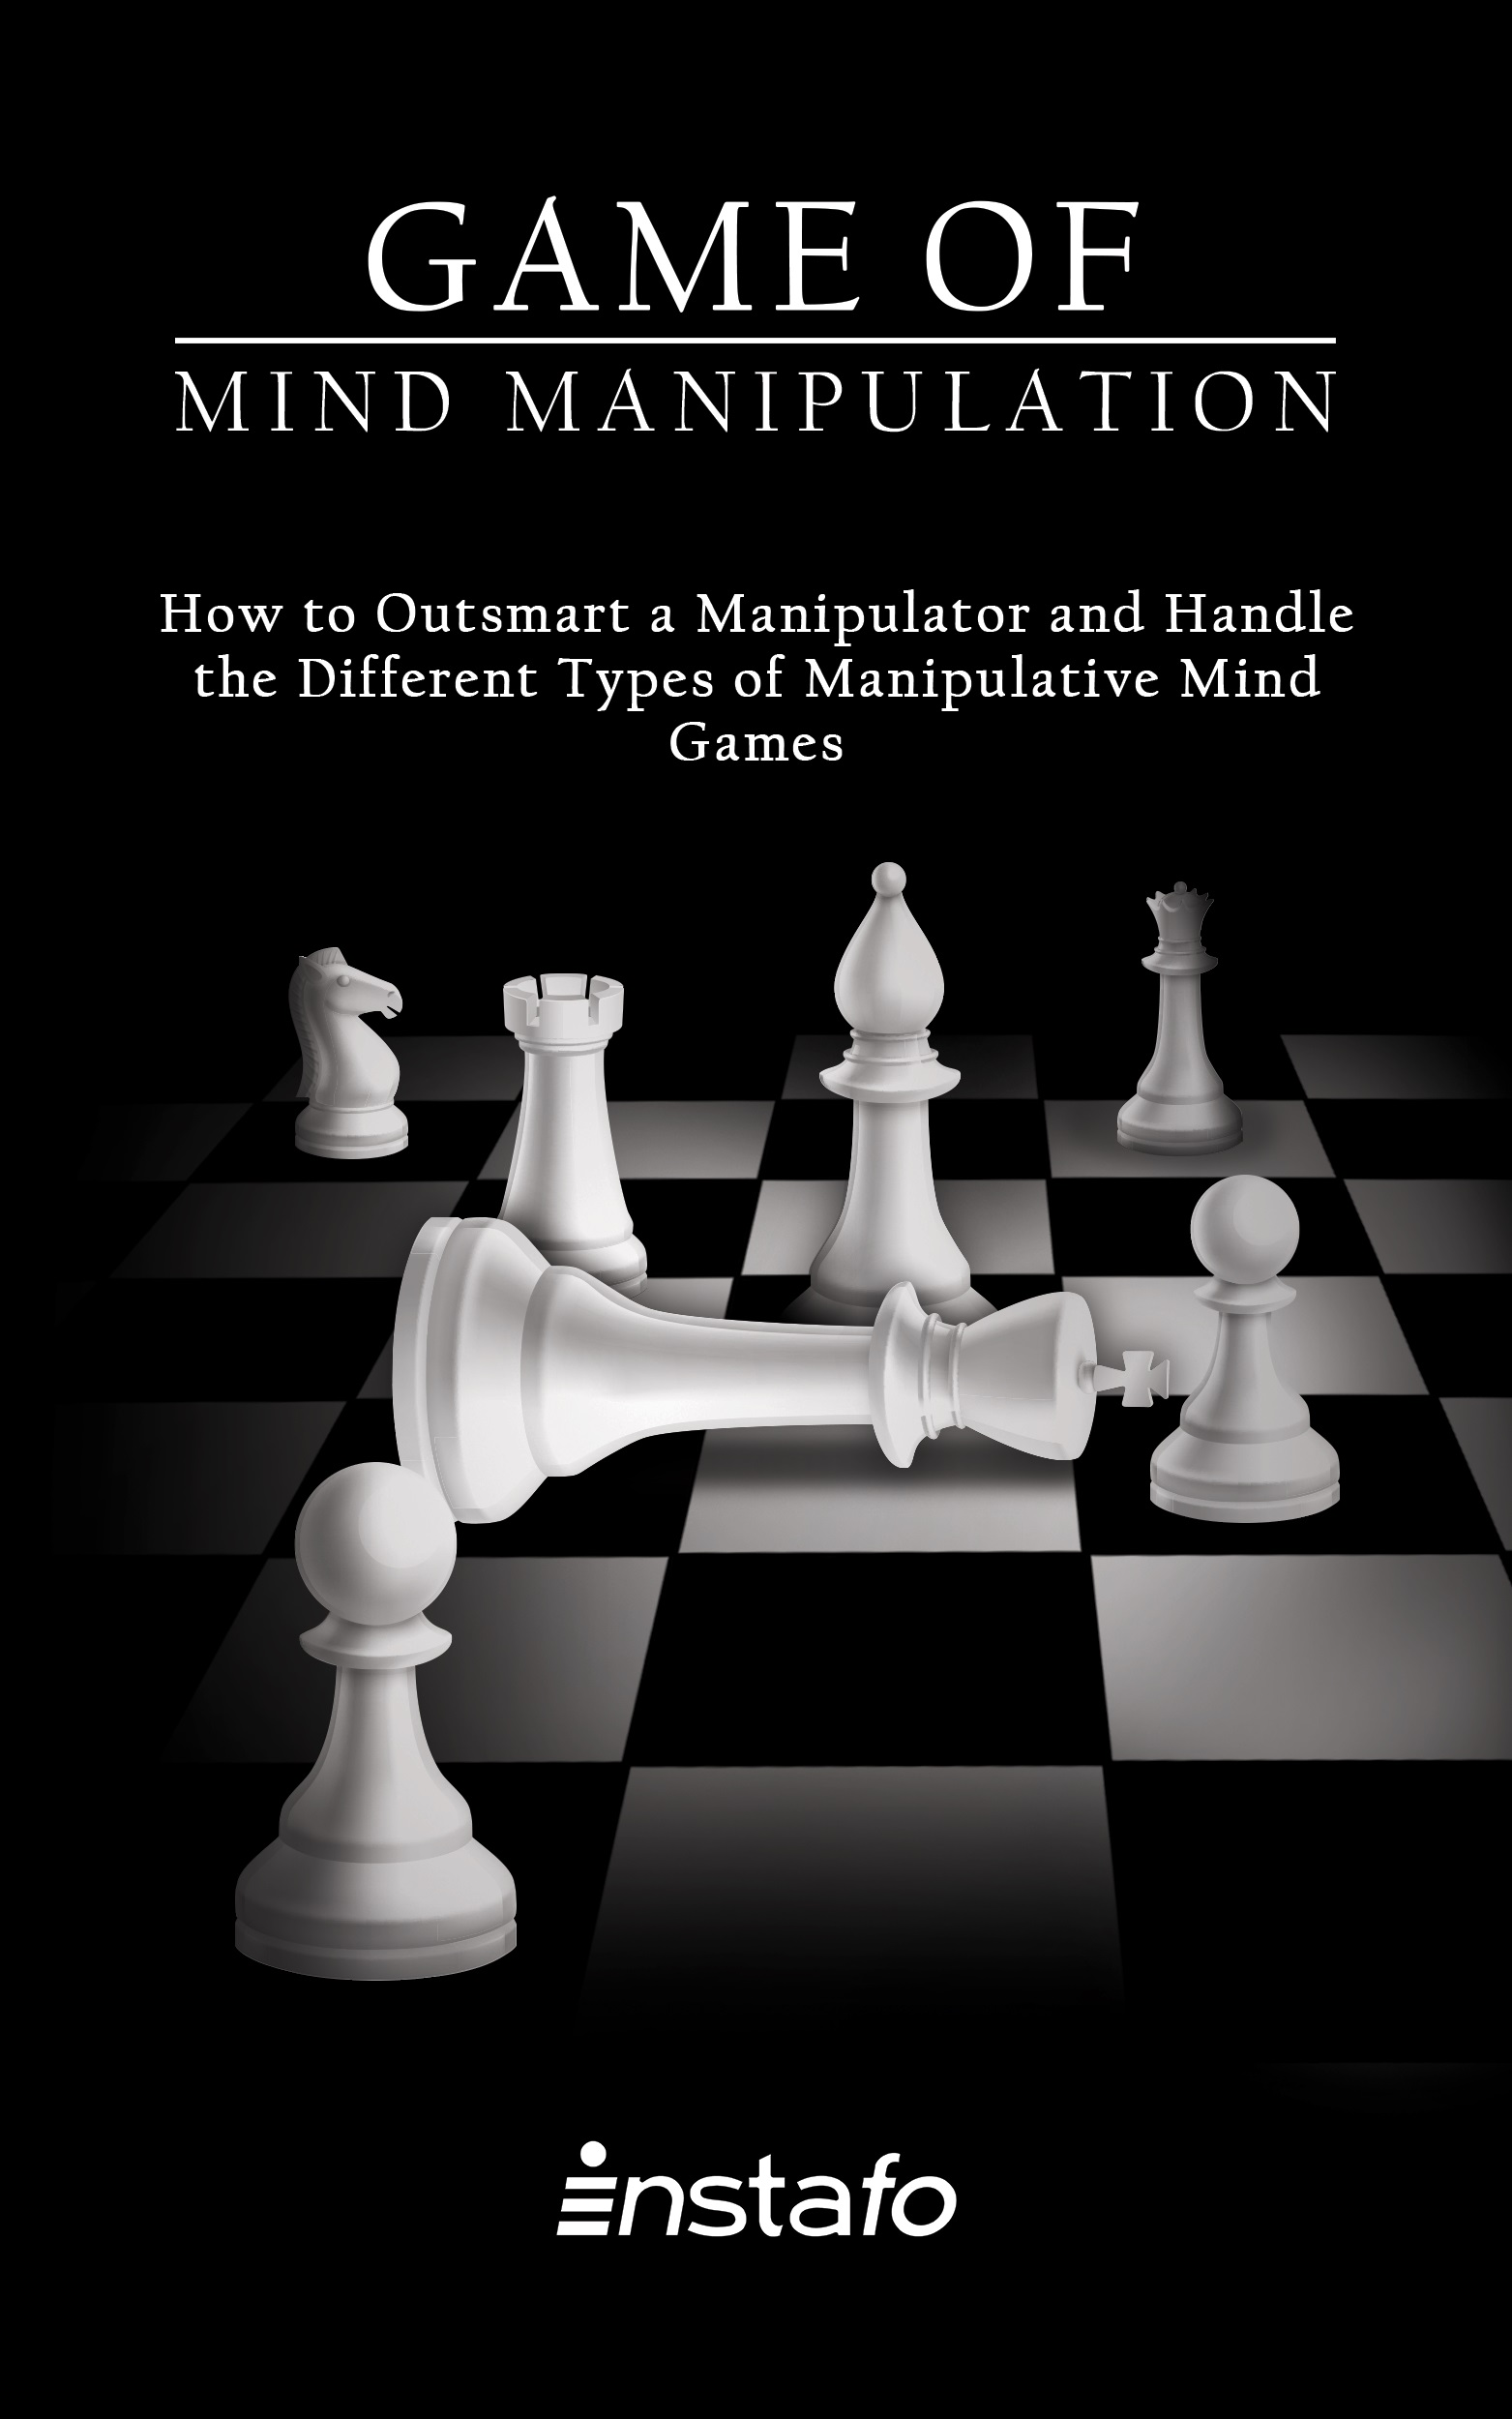 Game of Mind Manipulation: How to Outsmart a Manipulator and Handle the  Different Types of Manipulative Mind Games, an Ebook by Instafo